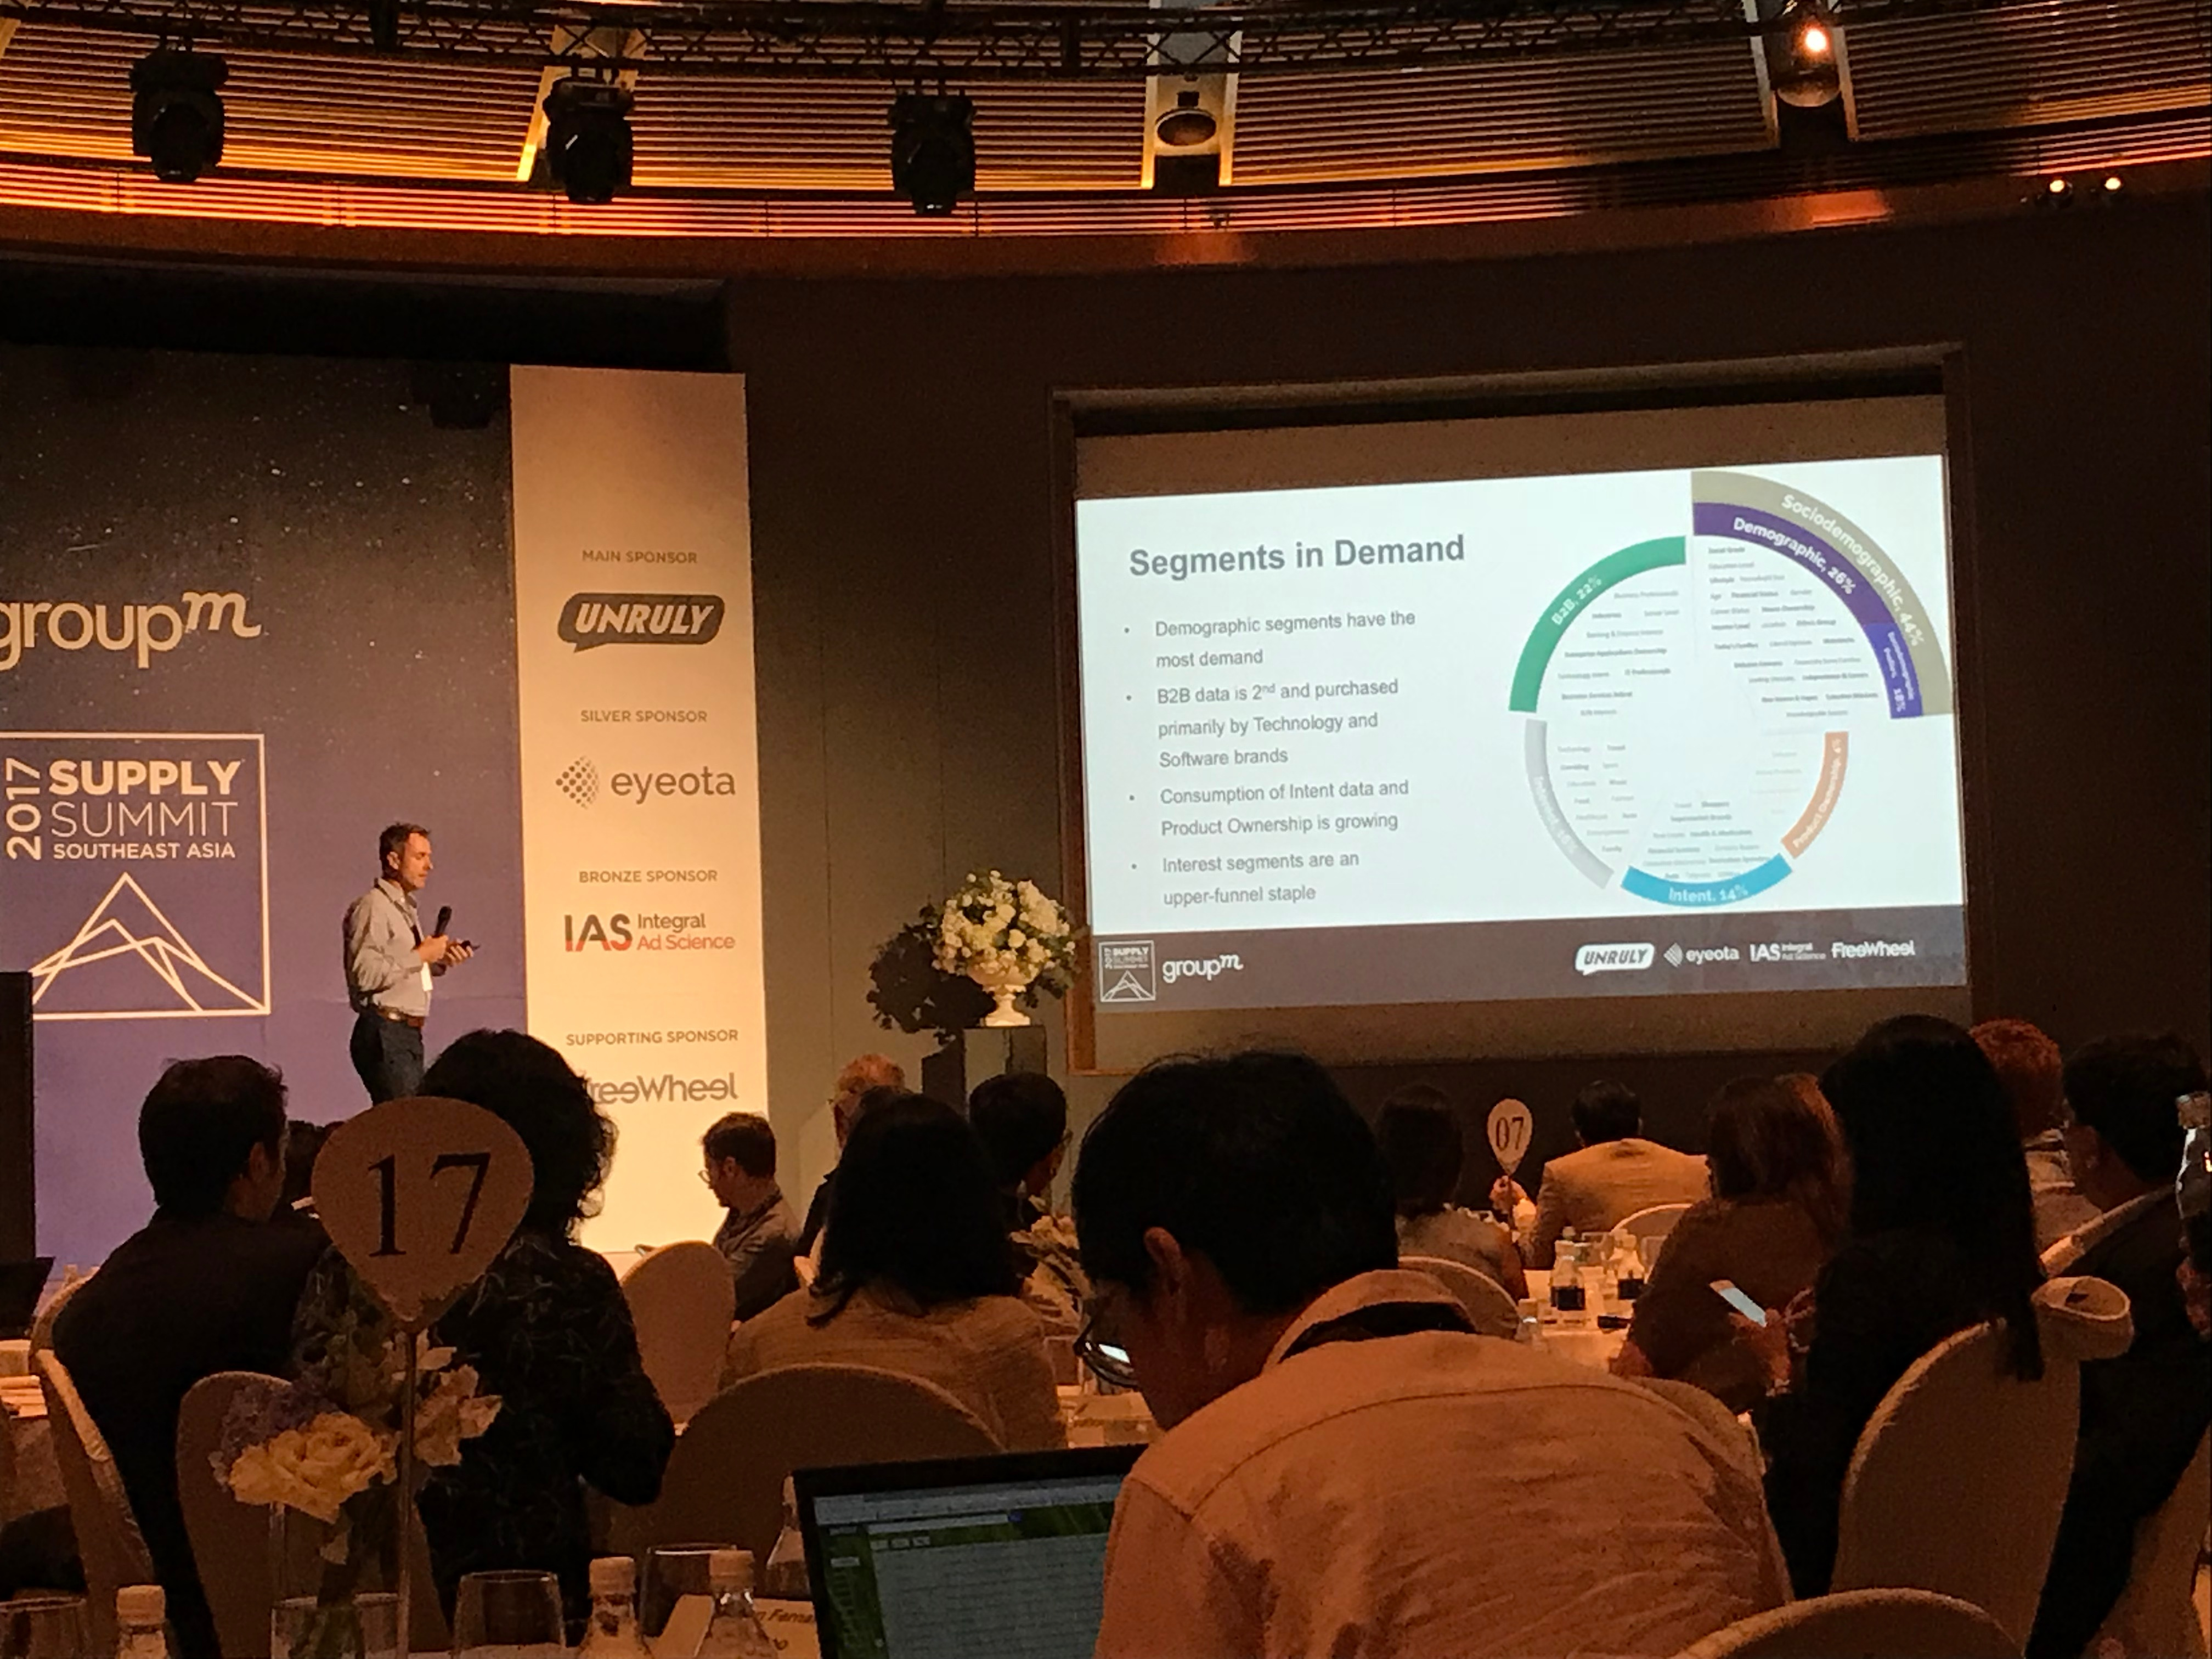 GroupM Supply Summit - 3.jpg